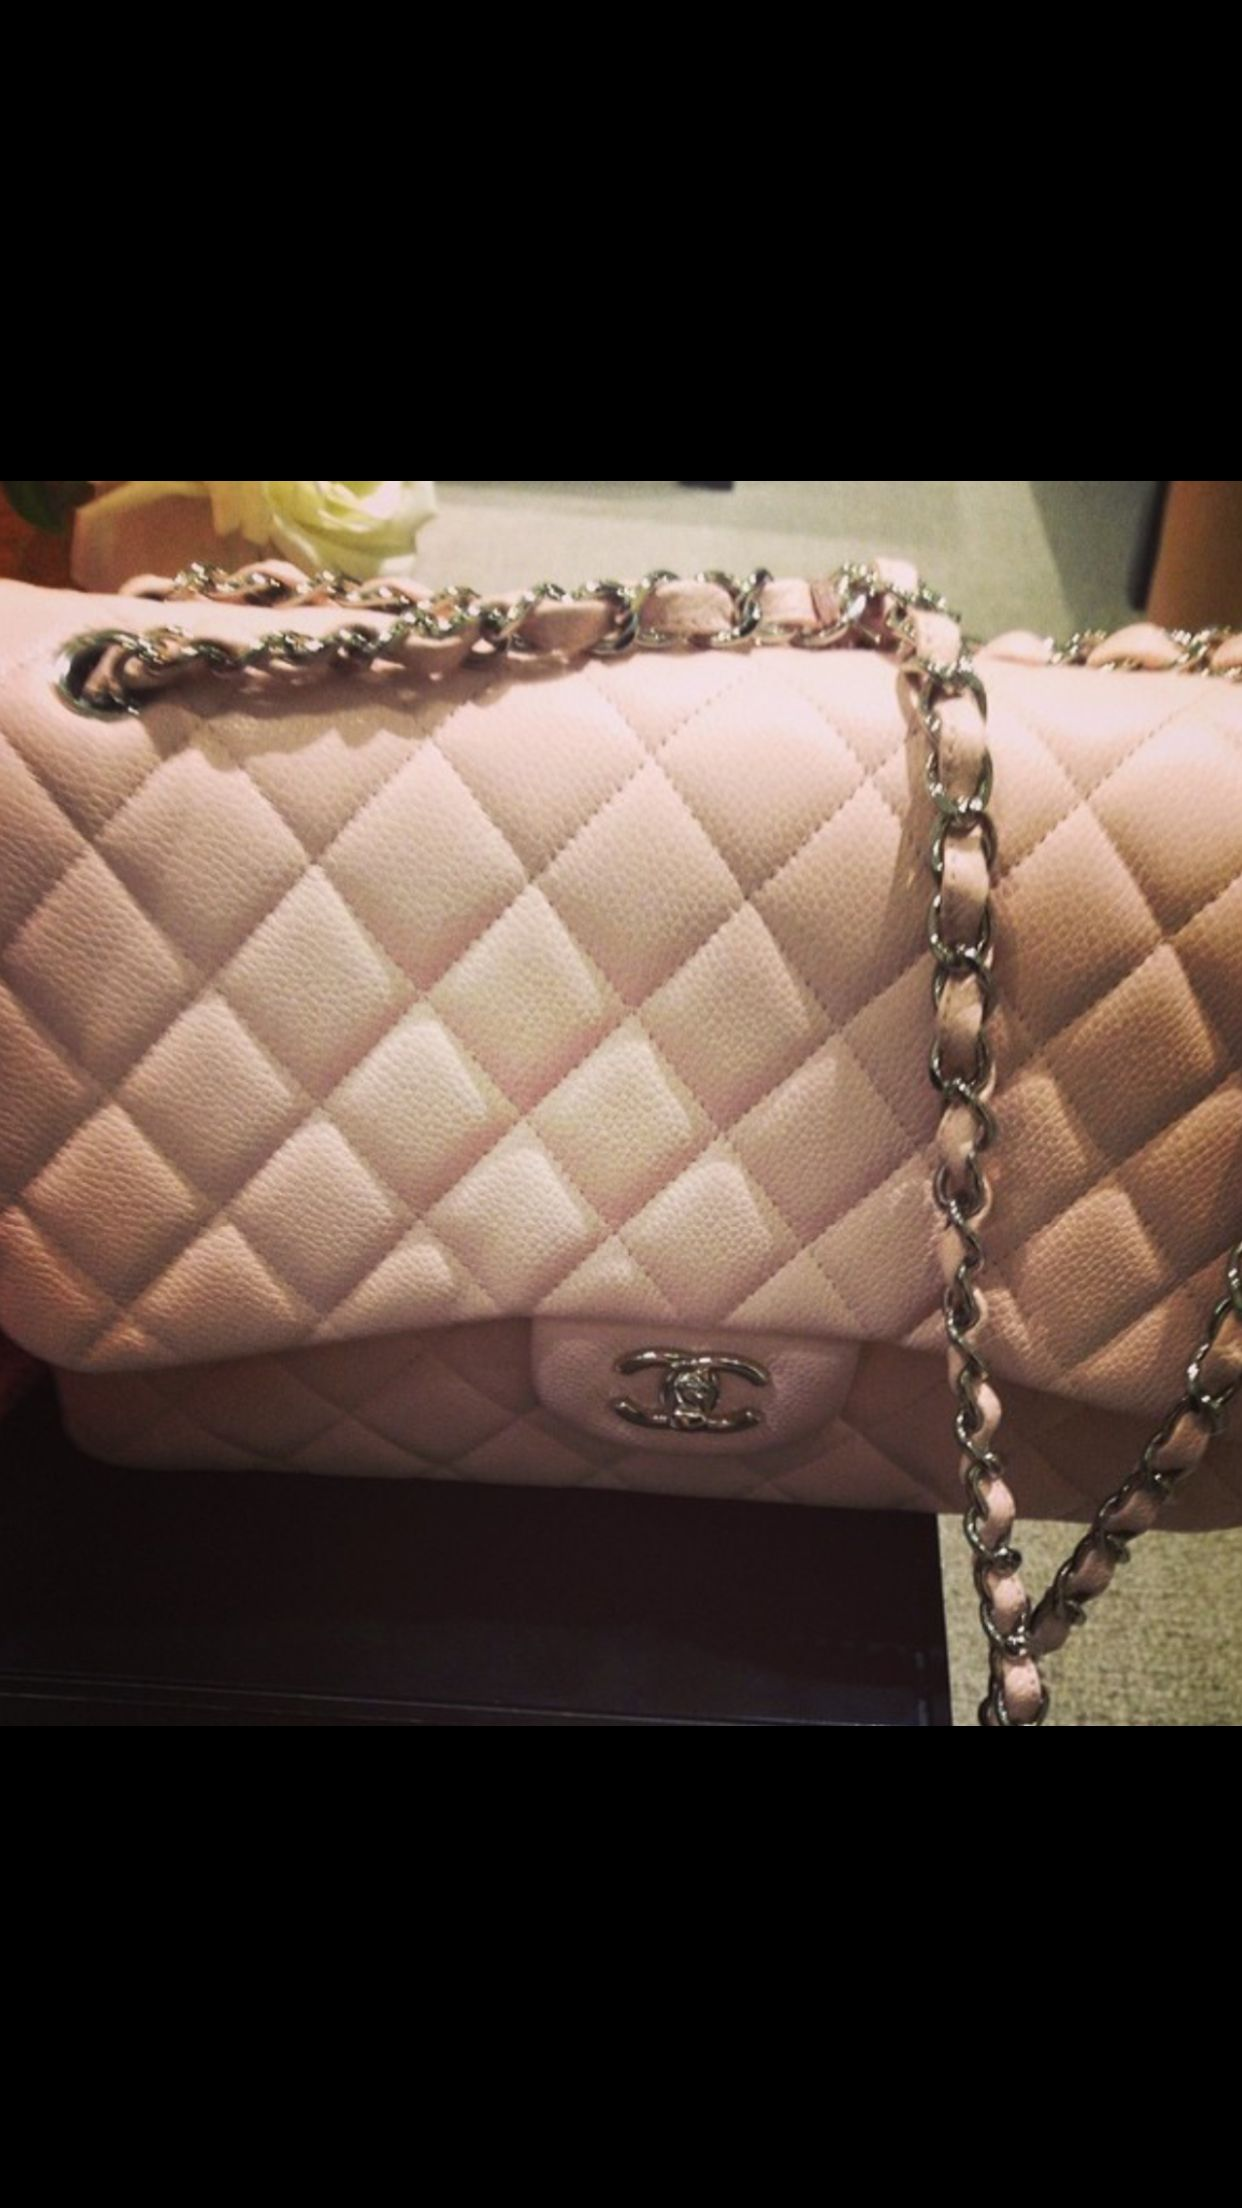 ❤️ the baby pink Chanel